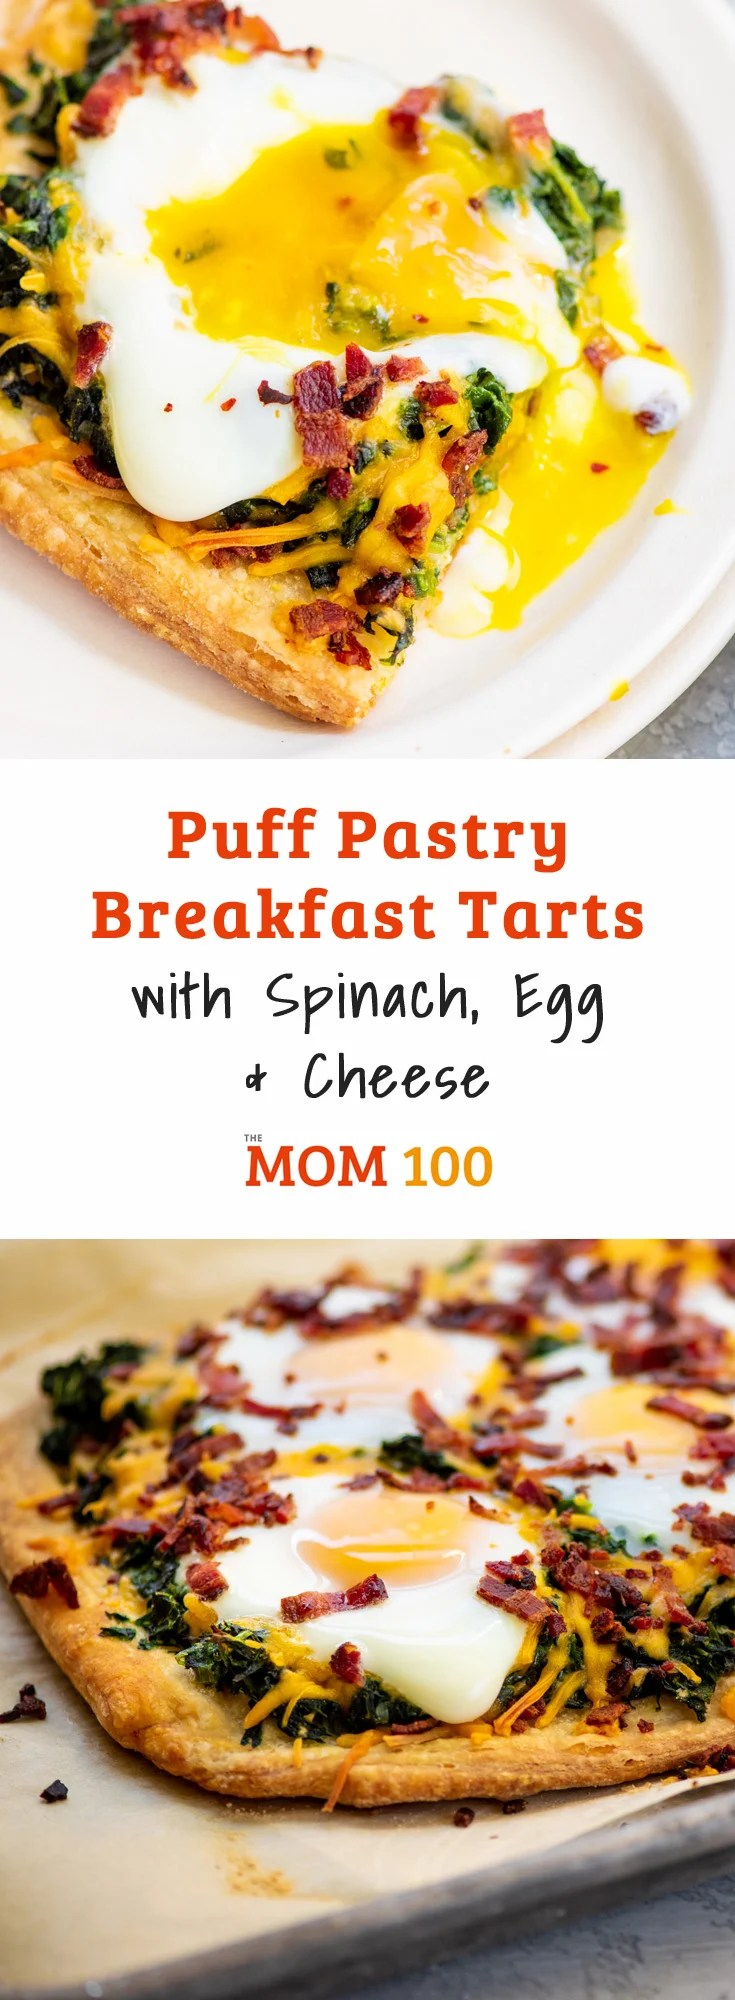 Puff Pastry Breakfast Tarts with Spinach, Egg and Cheese